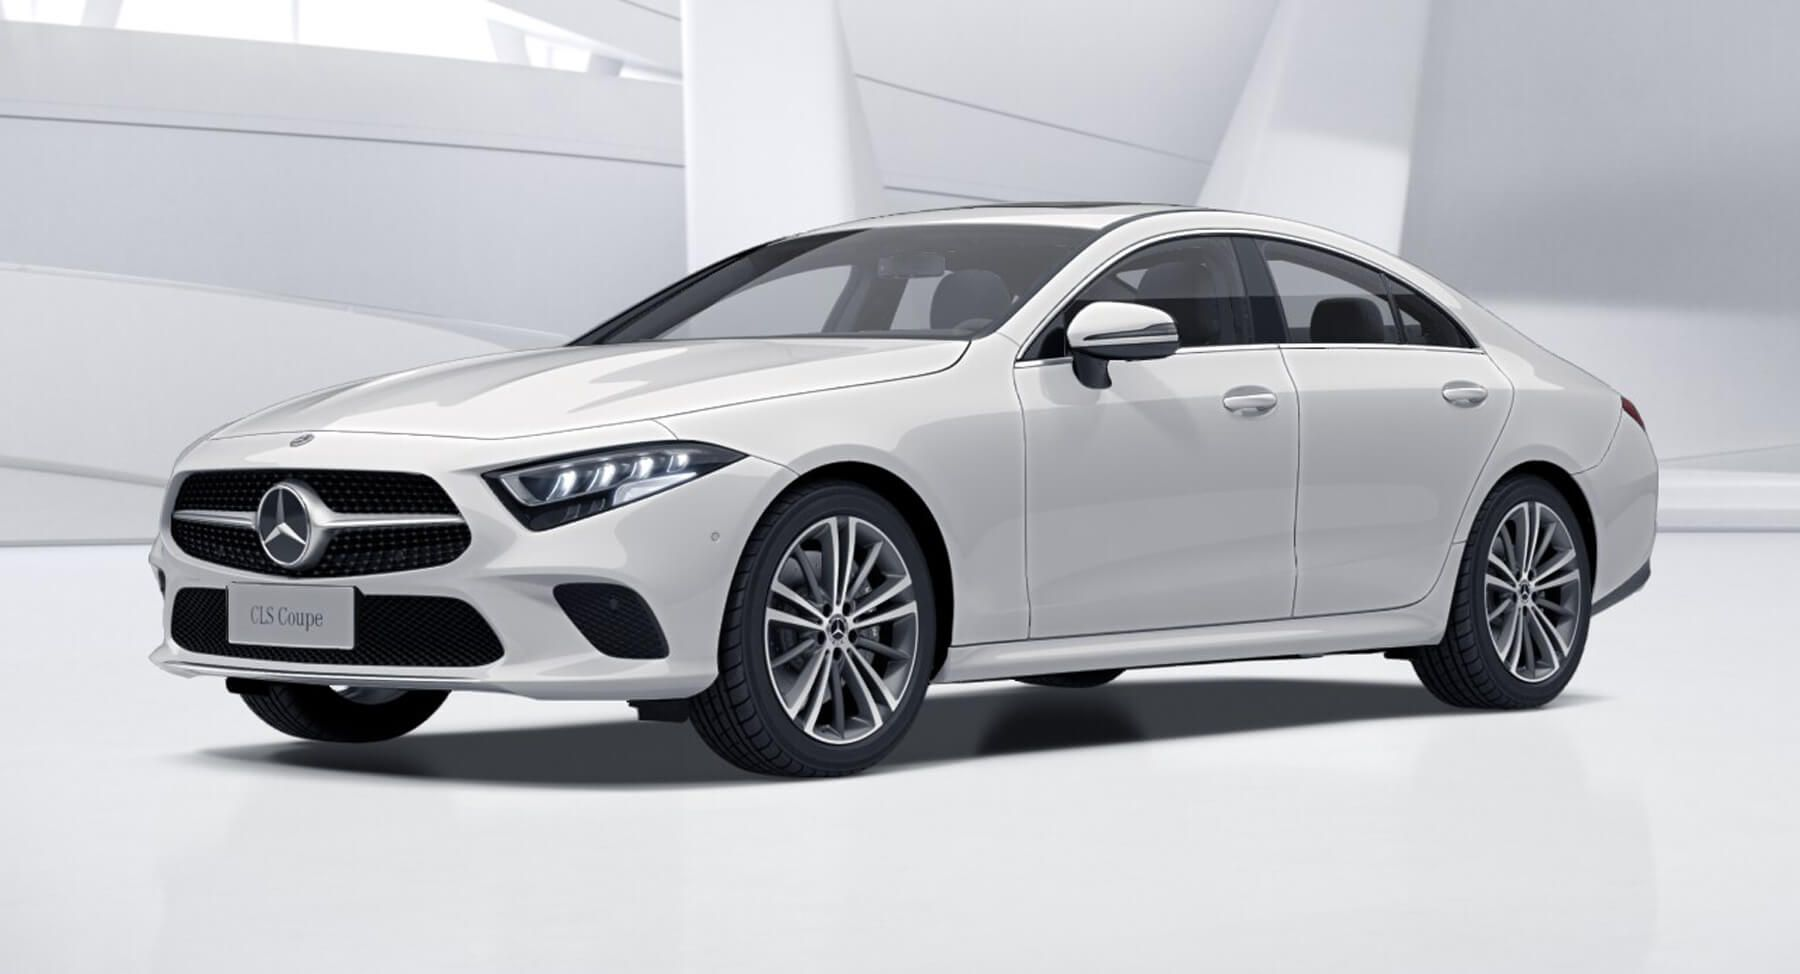 2020 Mercedes Benz Cls 260 Gains Tiny 1 5l Four Cylinder Engine In China China Mercedes Mercedescls Newcars Prices C Mercedes Benz Cls Benz Mercedes Benz